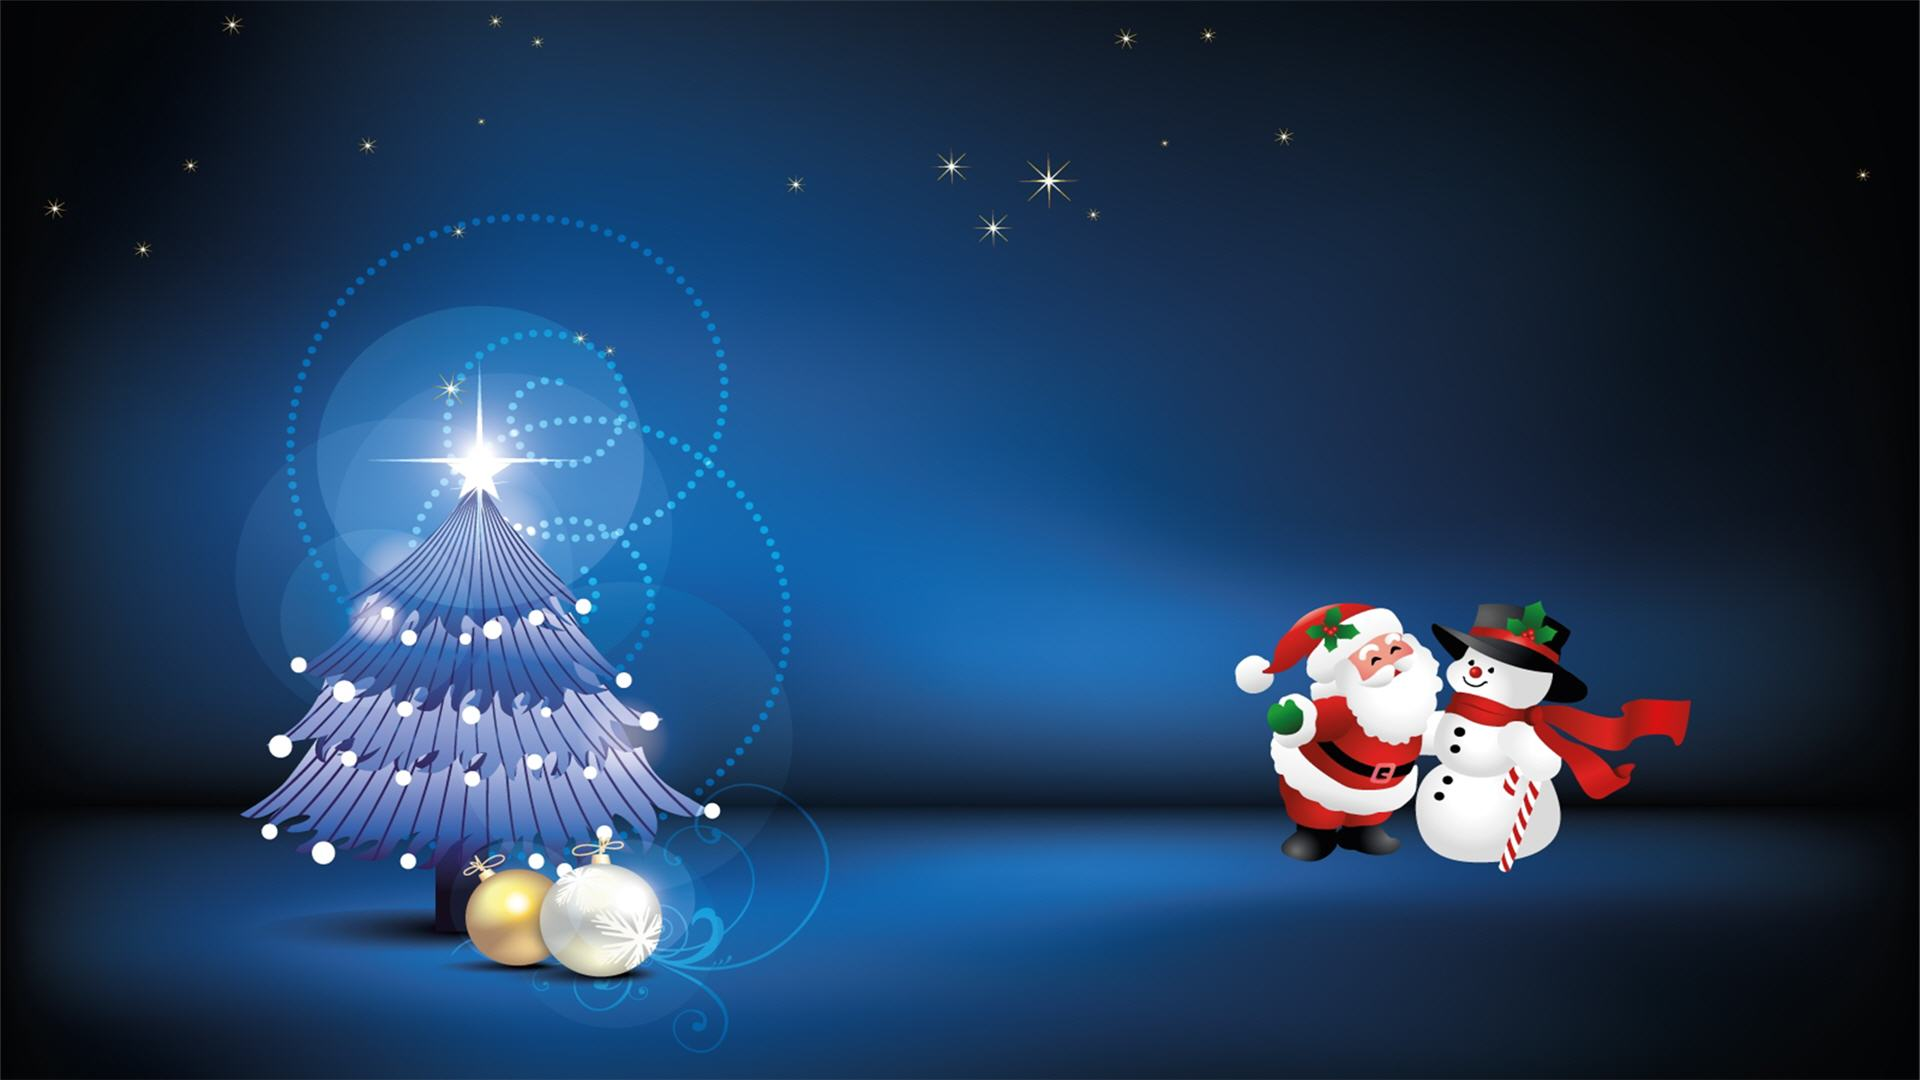 Wallpapers for Desktop Hd Christmas Wallpapers for Desktop 1920x1080